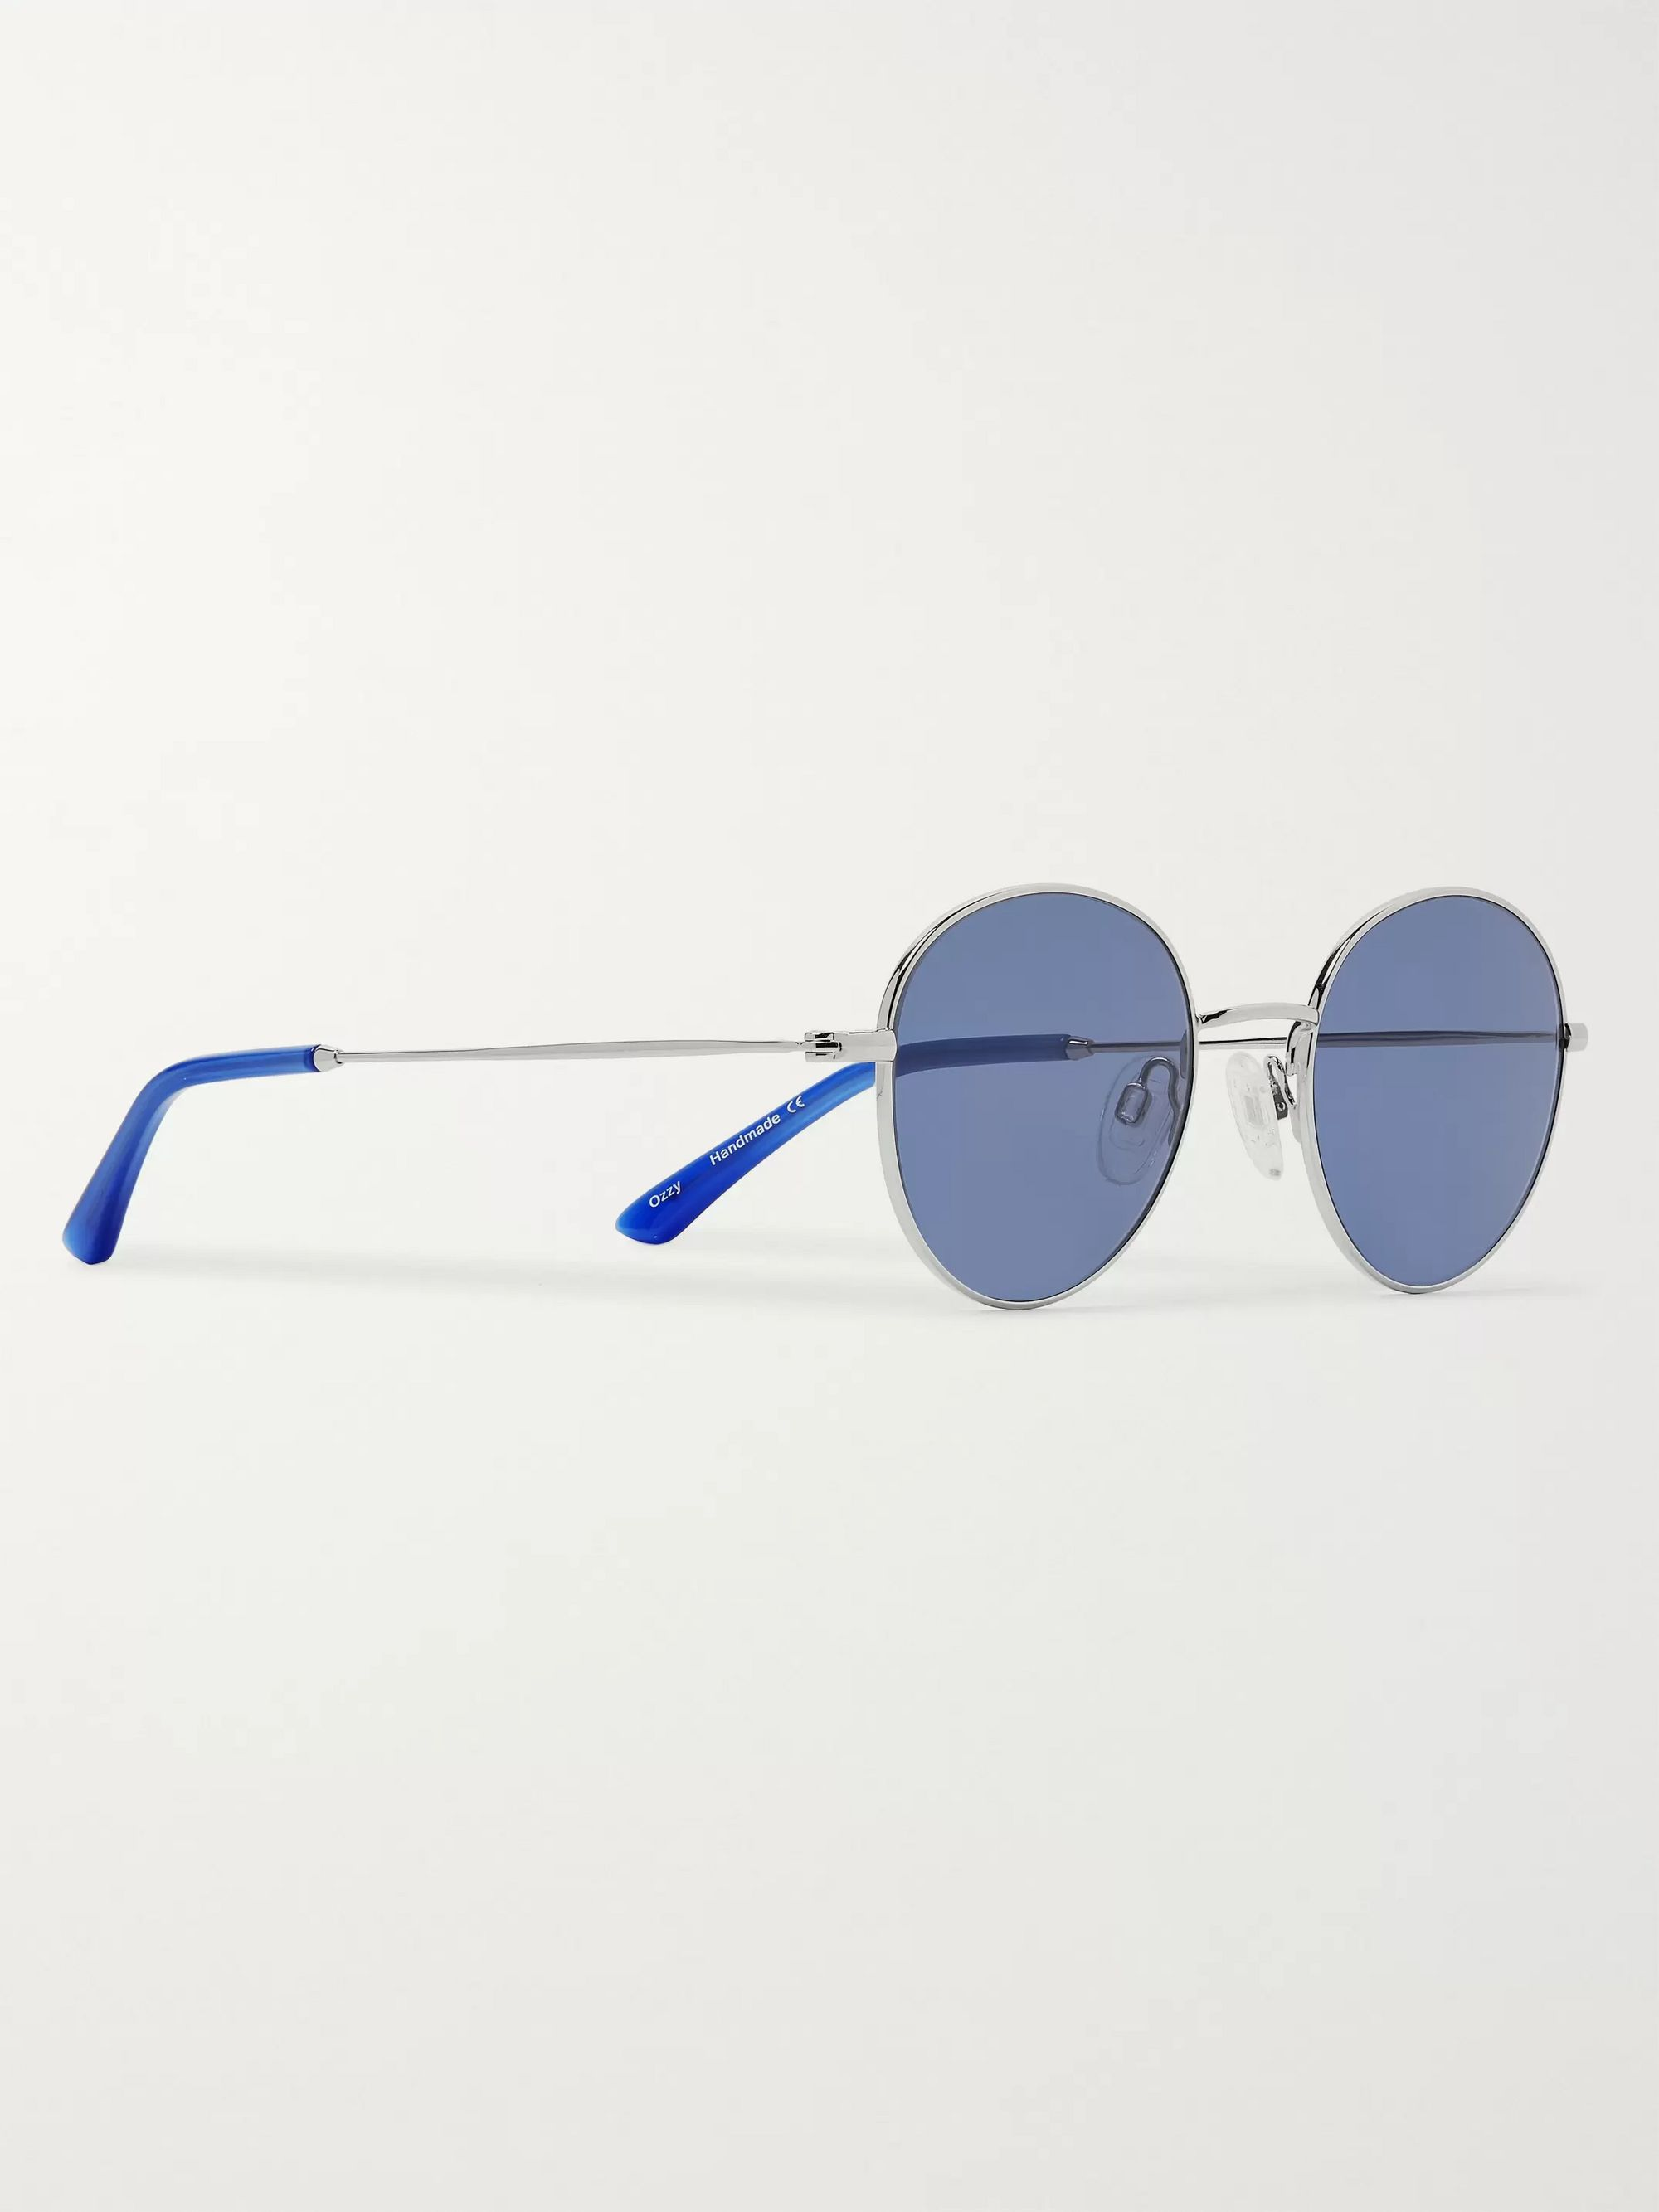 Sun Buddies Ozzy Round-Frame Stainless Steel and Acetate Sunglasses